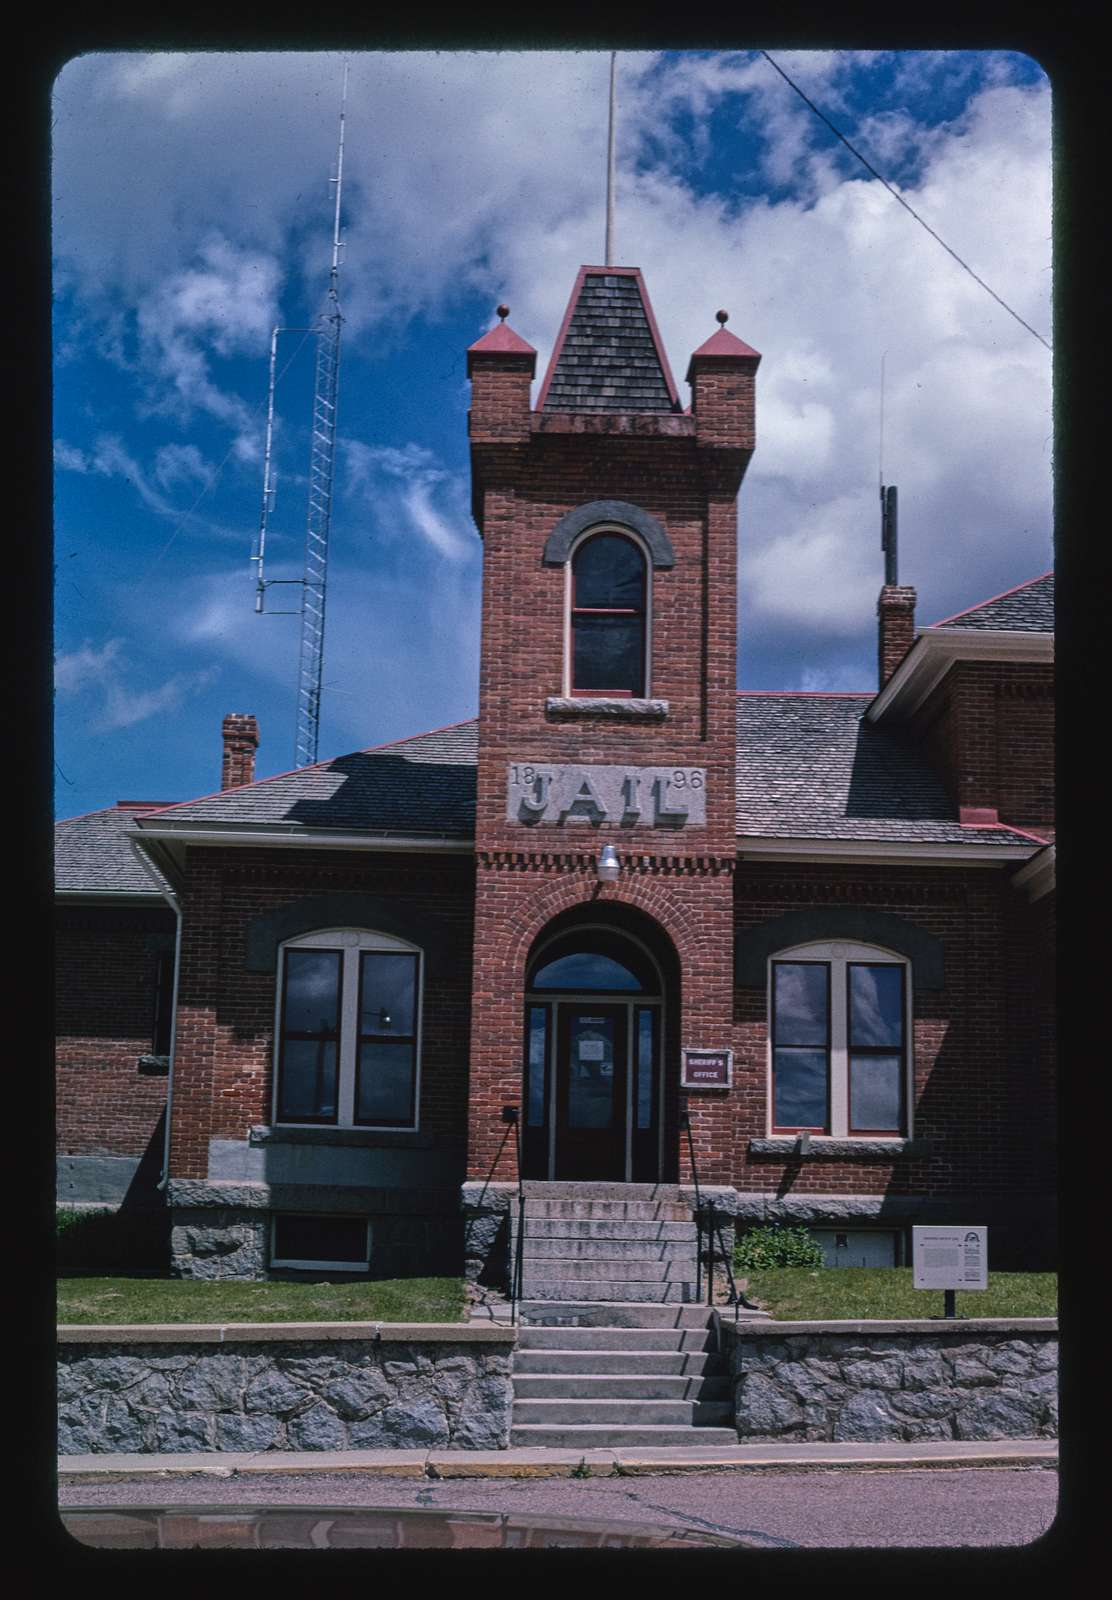 Jail (1896), Philipsburg, Montana